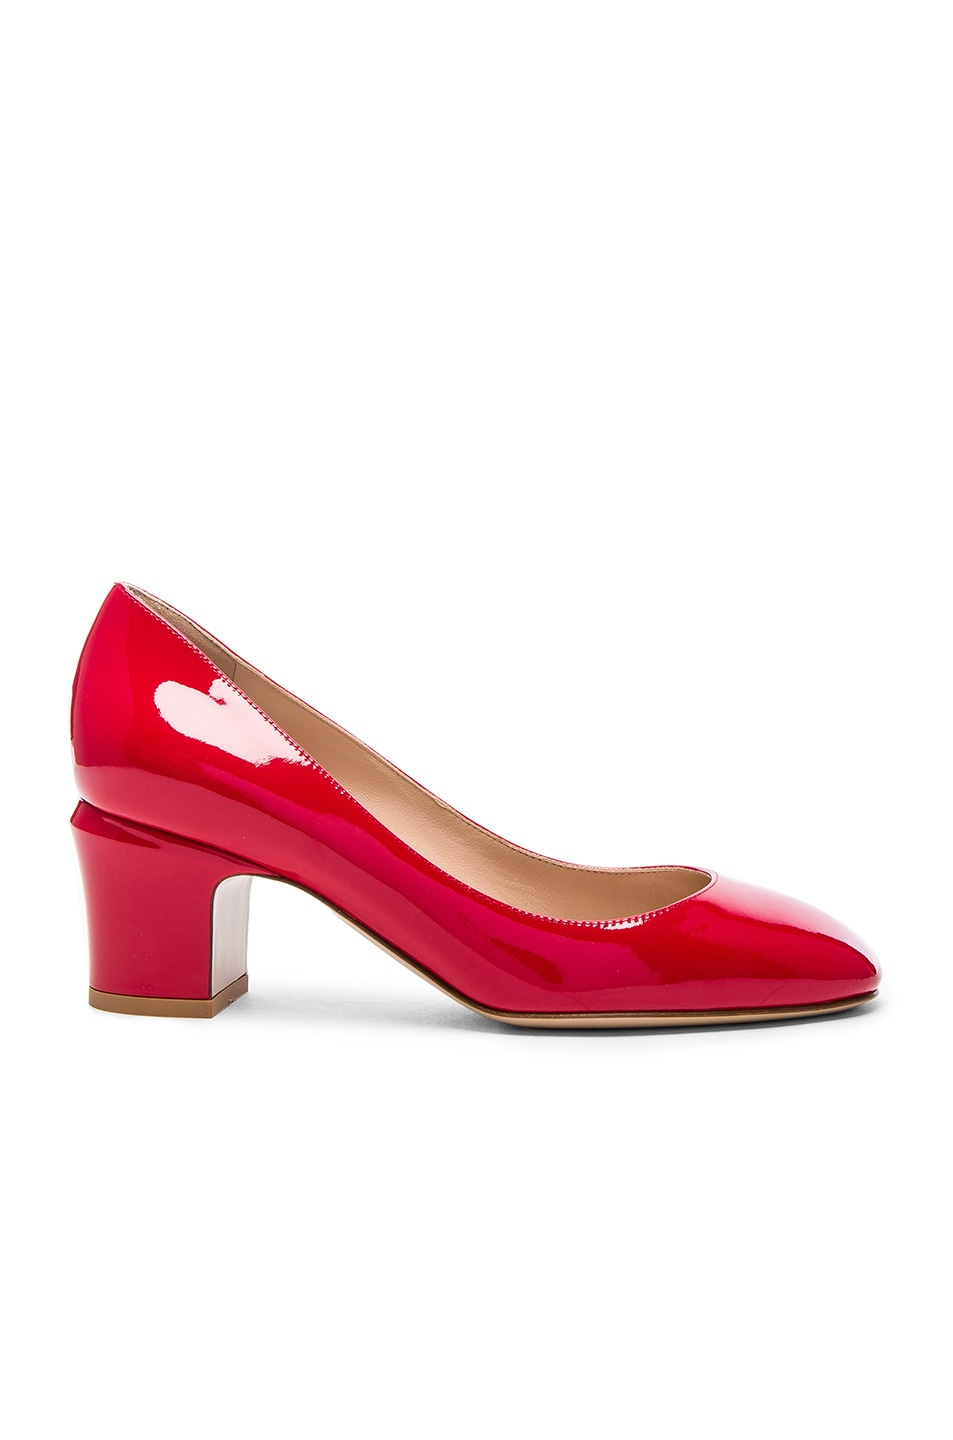 Image 1 of Valentino Patent Leather Tan-Go Pumps in Red